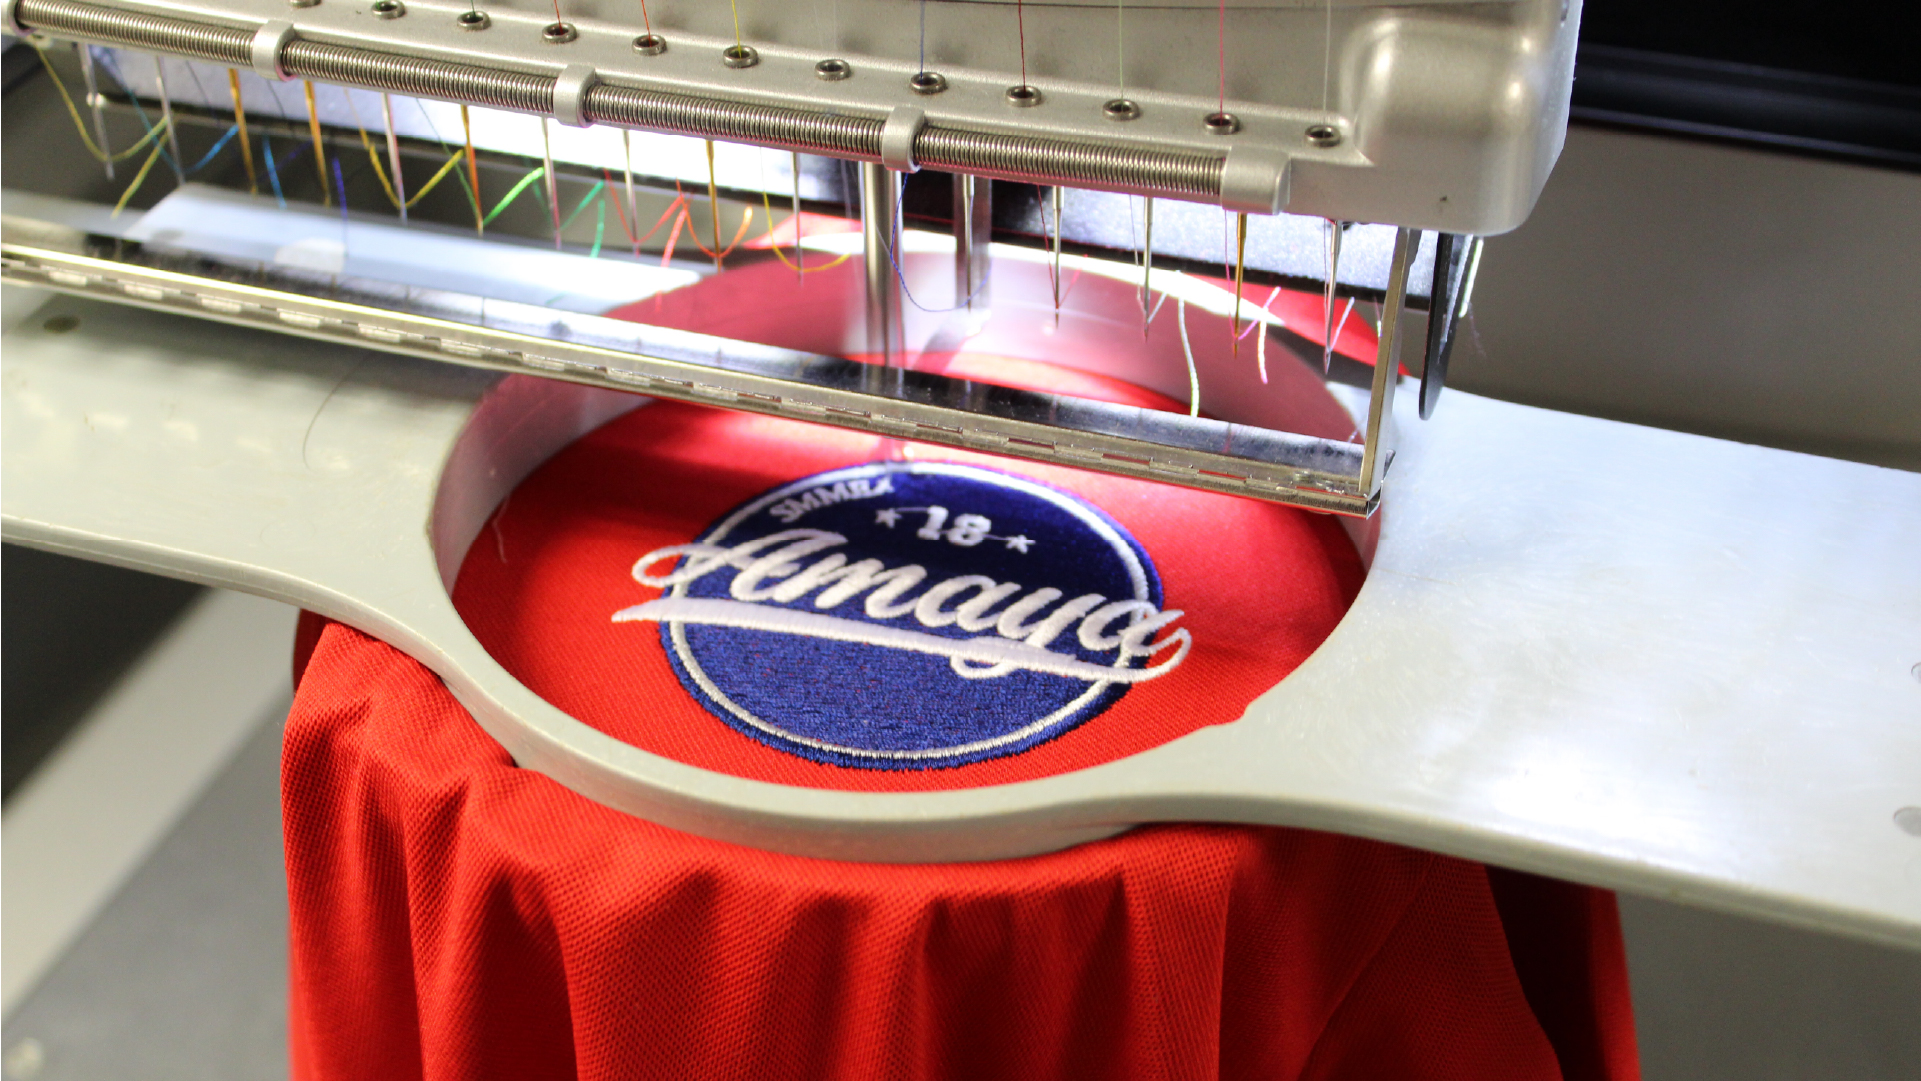 garment in a mighty hoop on a melco emt16x modular embroidery machine